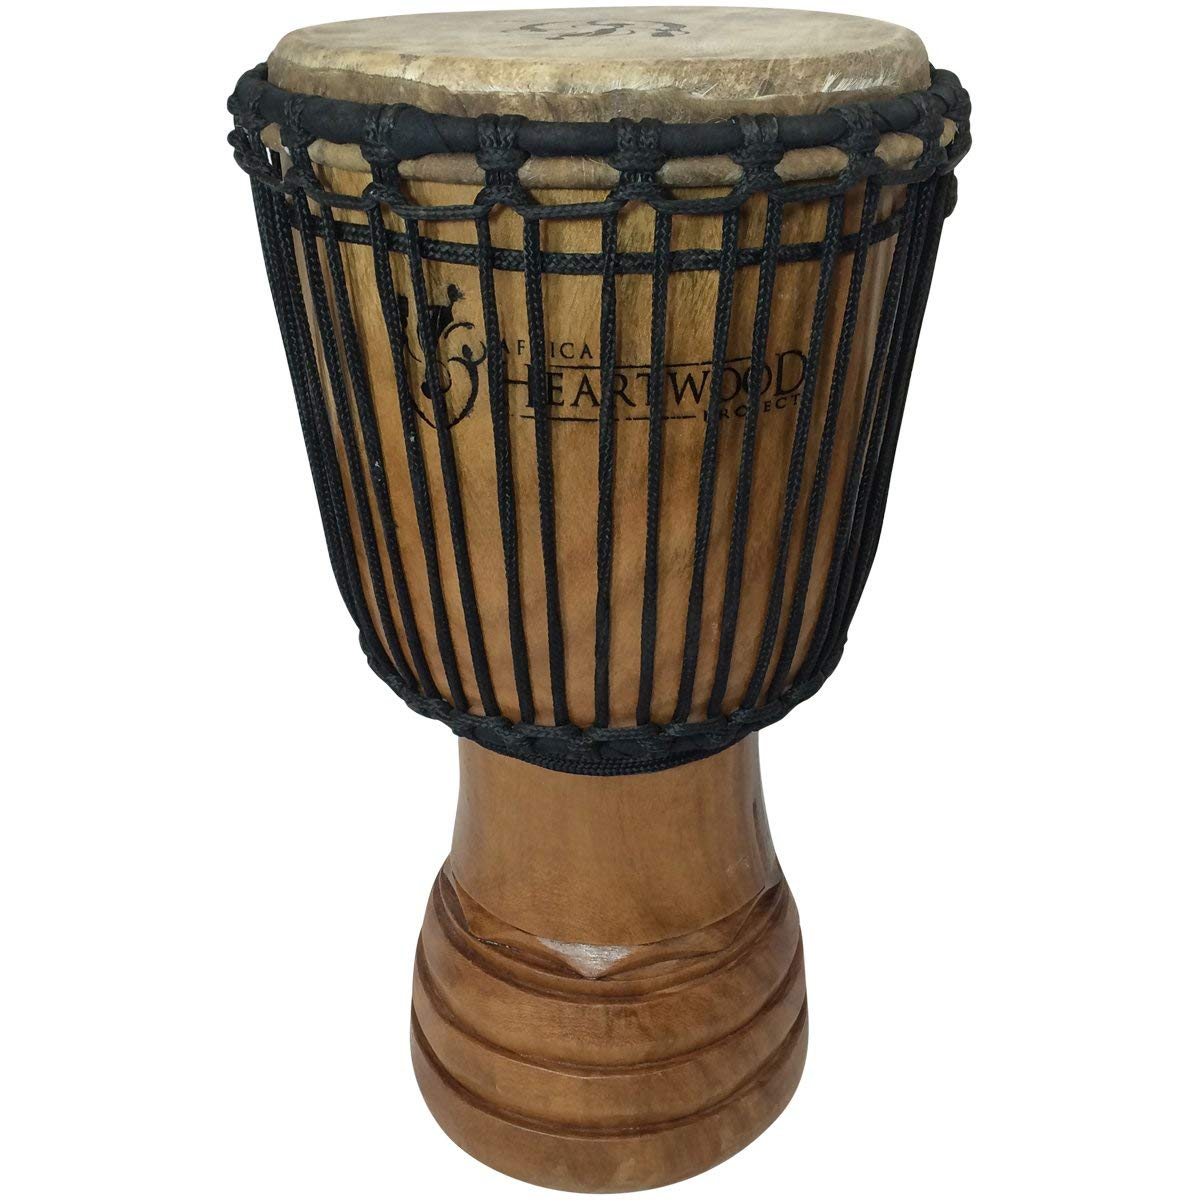 Classic Heartwood Djembe Drum - 9''x 18'', Hand-carved, Solid-wood, Goat-skin, from Ghana